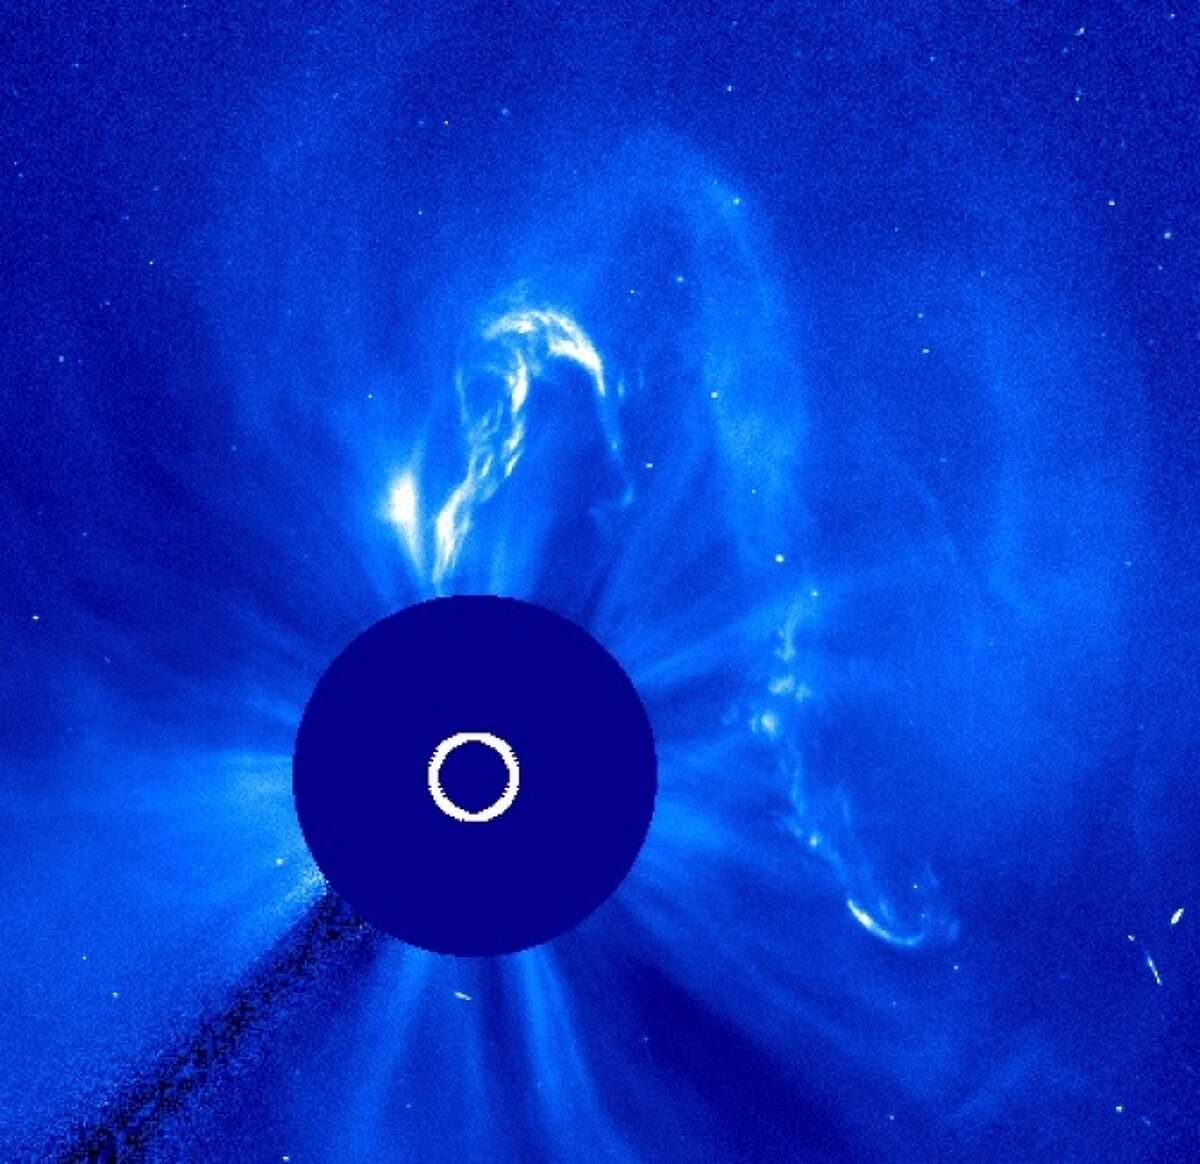 A coronal mass ejection shoots up from the sun in this image of the sun's atmosphere. The sun is obscured by the blue disk so that the dimmer atmosphere can be seen. This image was captured by the European Space Agency/NASA's Solar and Heliospheric Observatory at 9:54 p.m. EDT on Sept. 29, 2013.